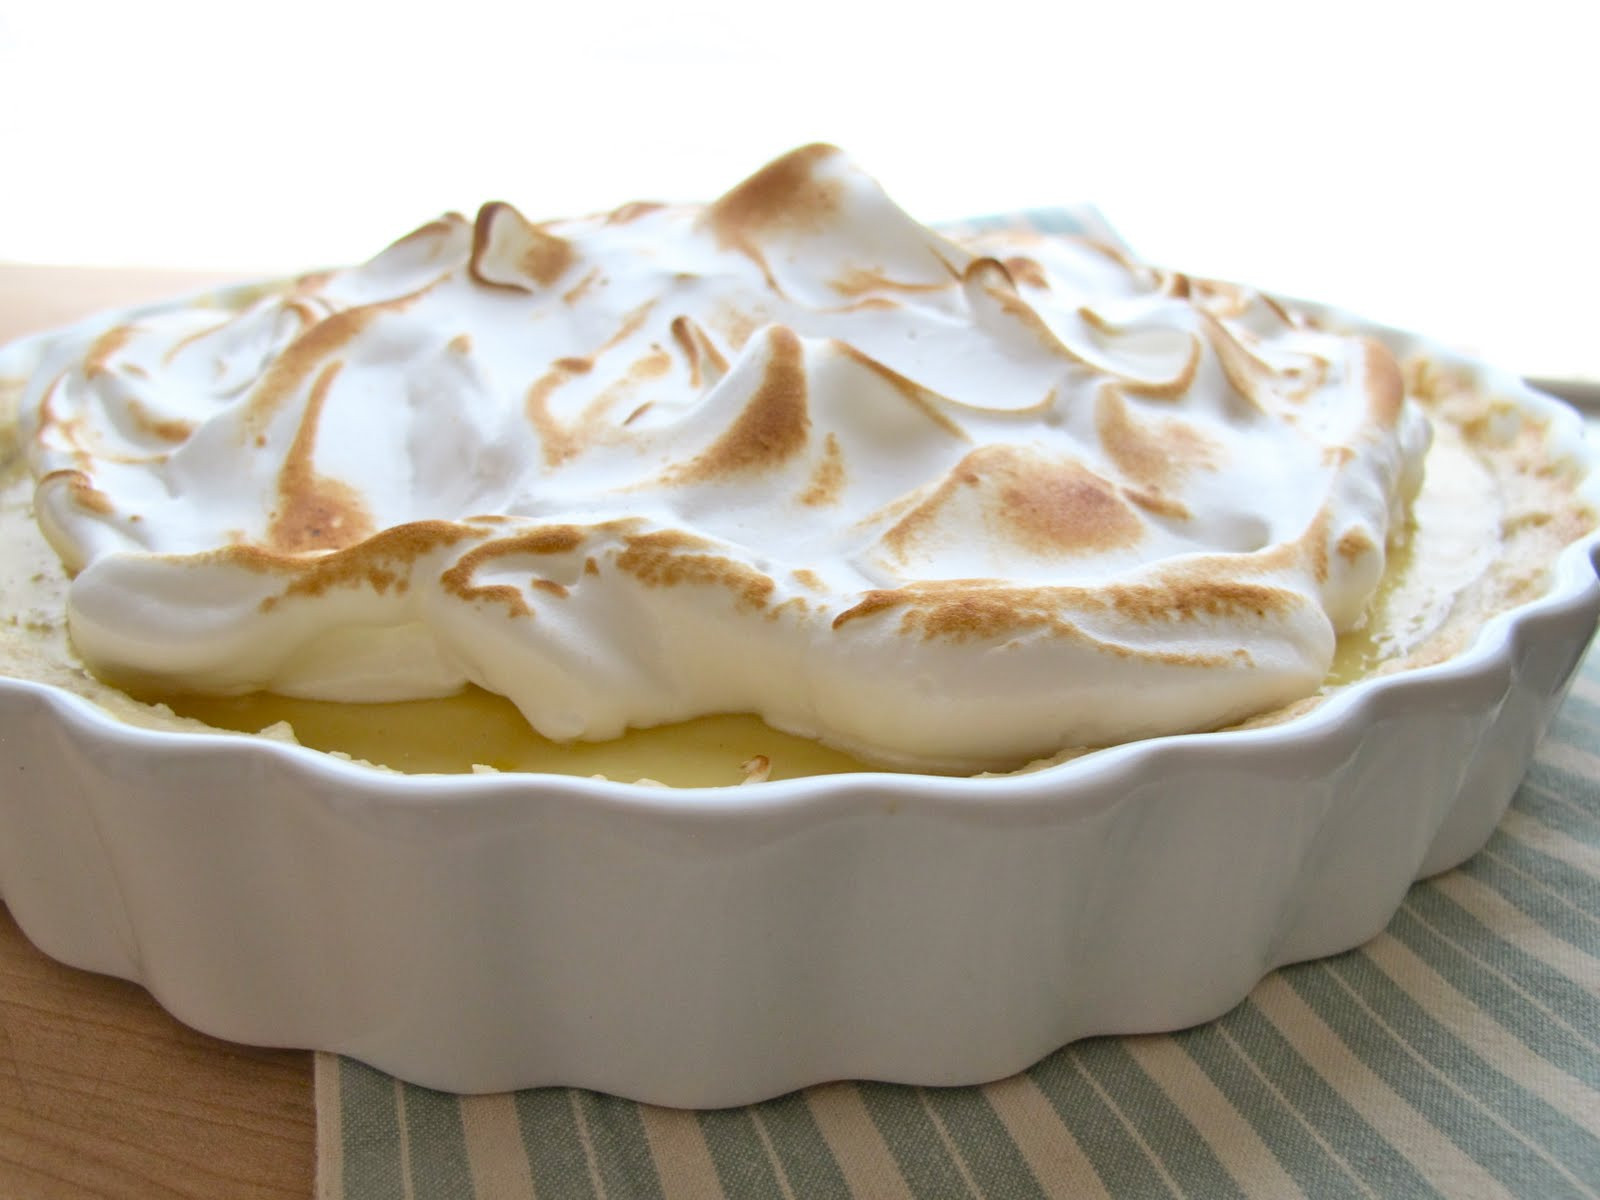 Lemon Easter Desserts  Jenny Steffens Hobick Easter Lemon Meringue Pie